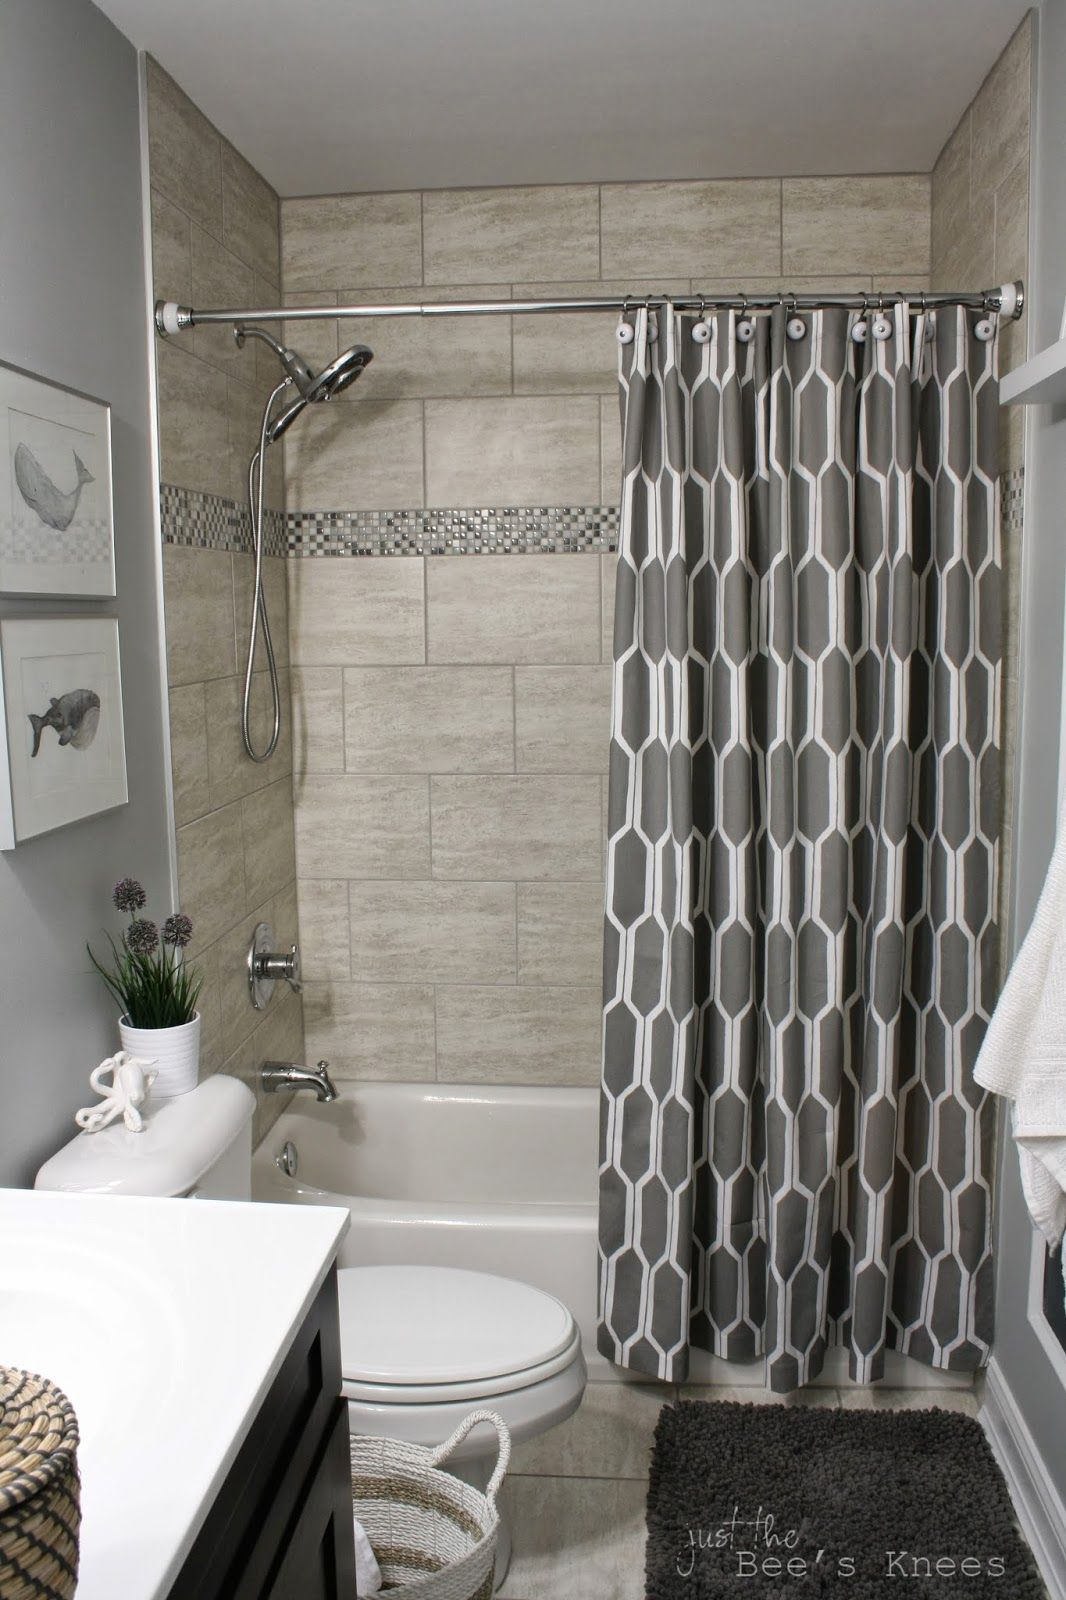 Tile Idea Kids Bathroom Honeycomb Shower Curtain From West Elm